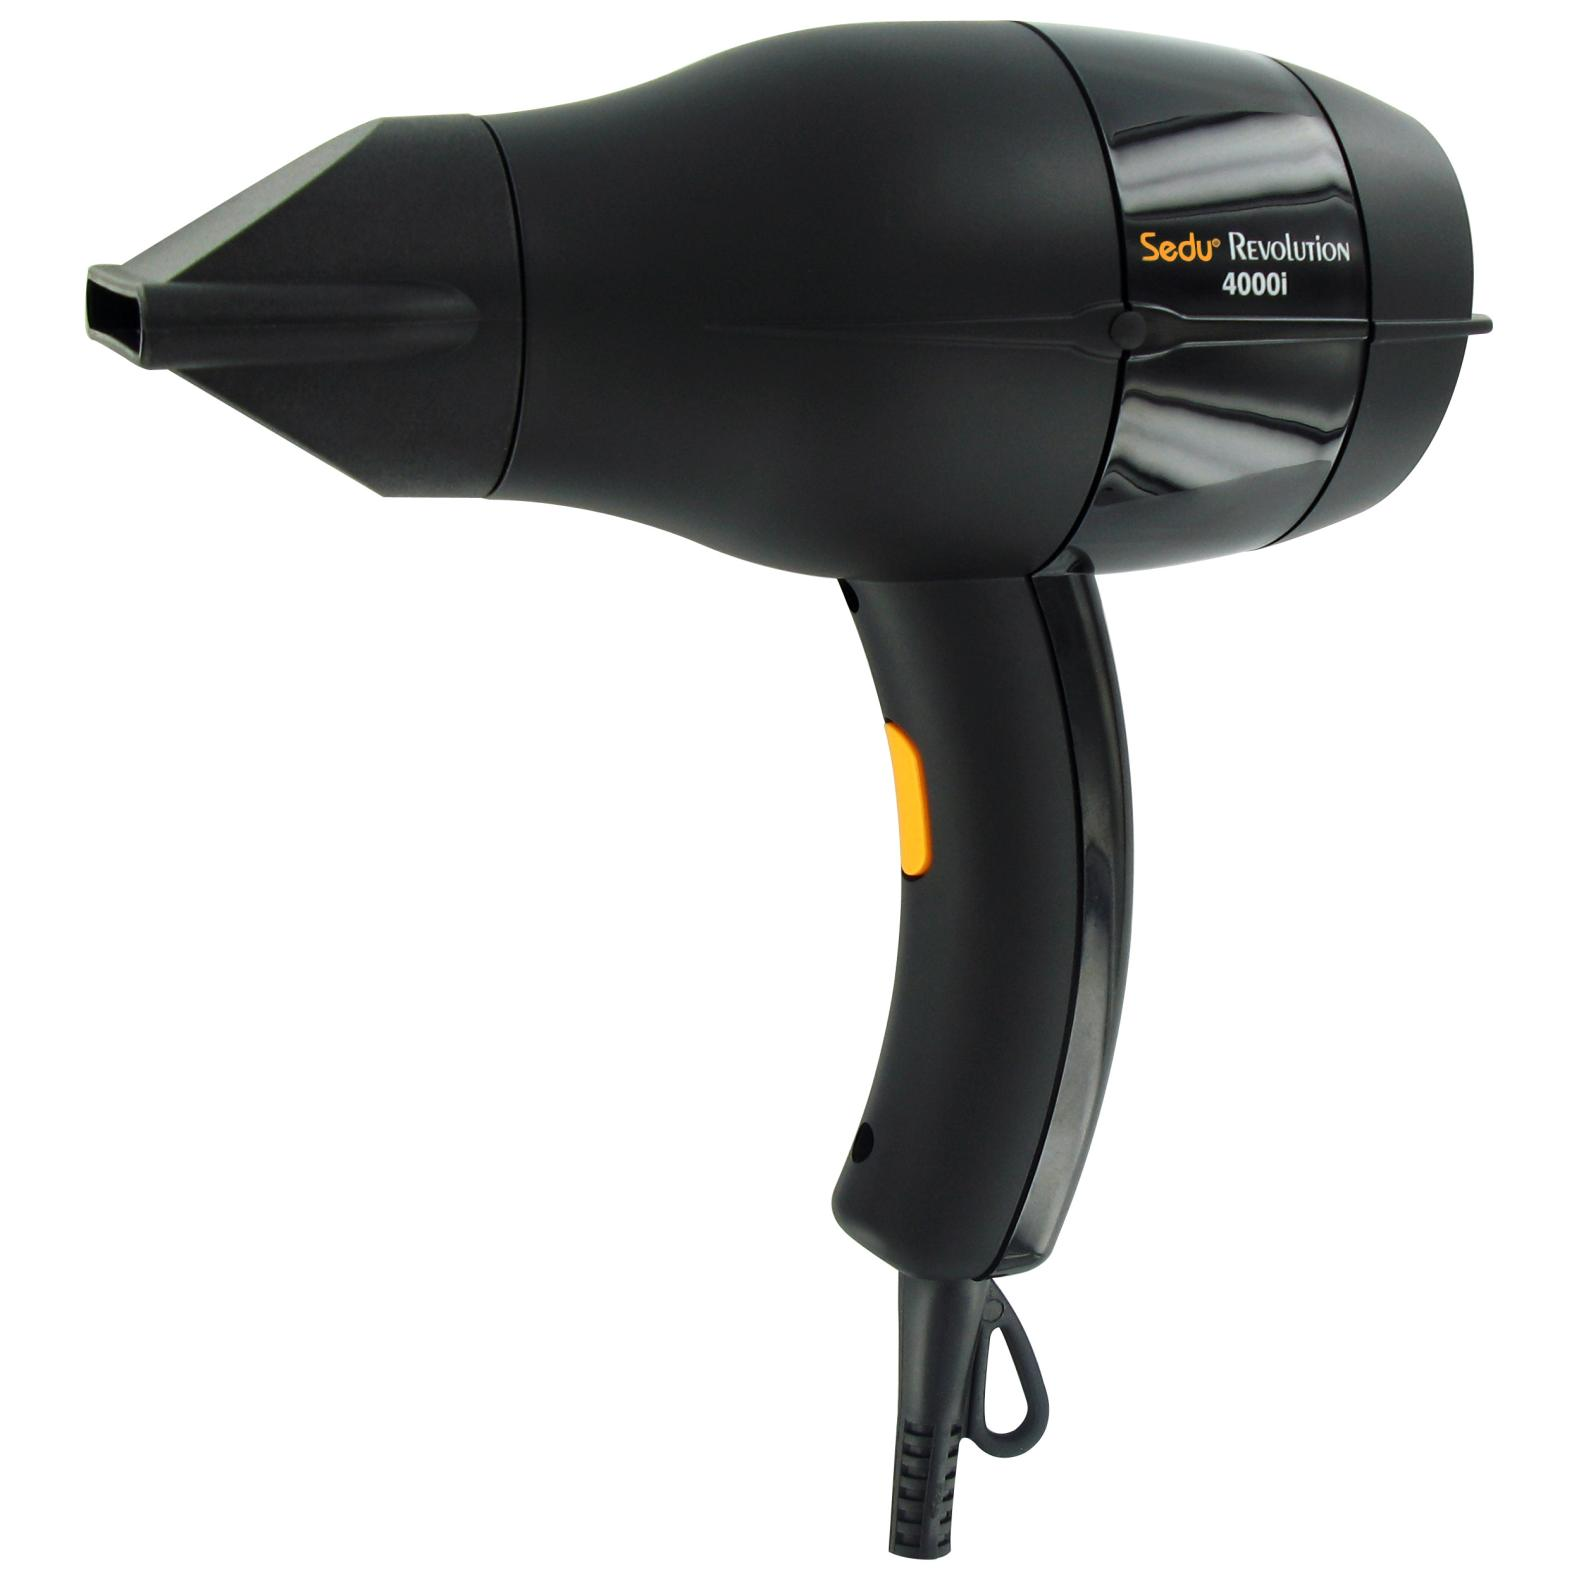 Get the look with this SEDU Revolution Pro Tourmaline Ionic 4000i Dryer